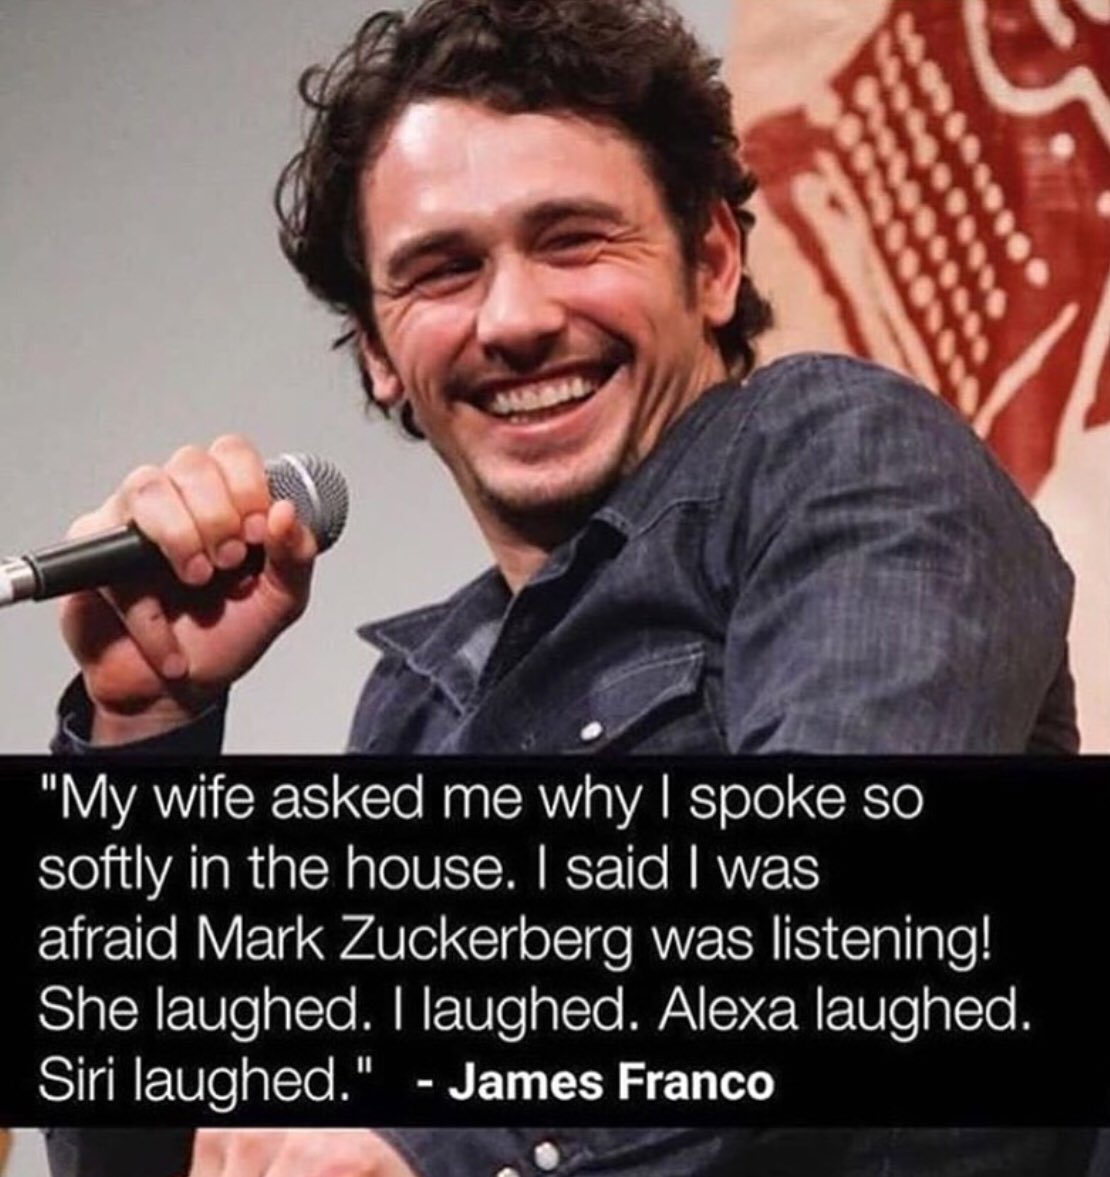 """My wife asked me why I spoke so softly in the house. I said I was afraid Mark Zuckerberg was listening! She laughed. I laughed. Alexa laughed. Siri laughed."" – James Franco [1110×1177]"